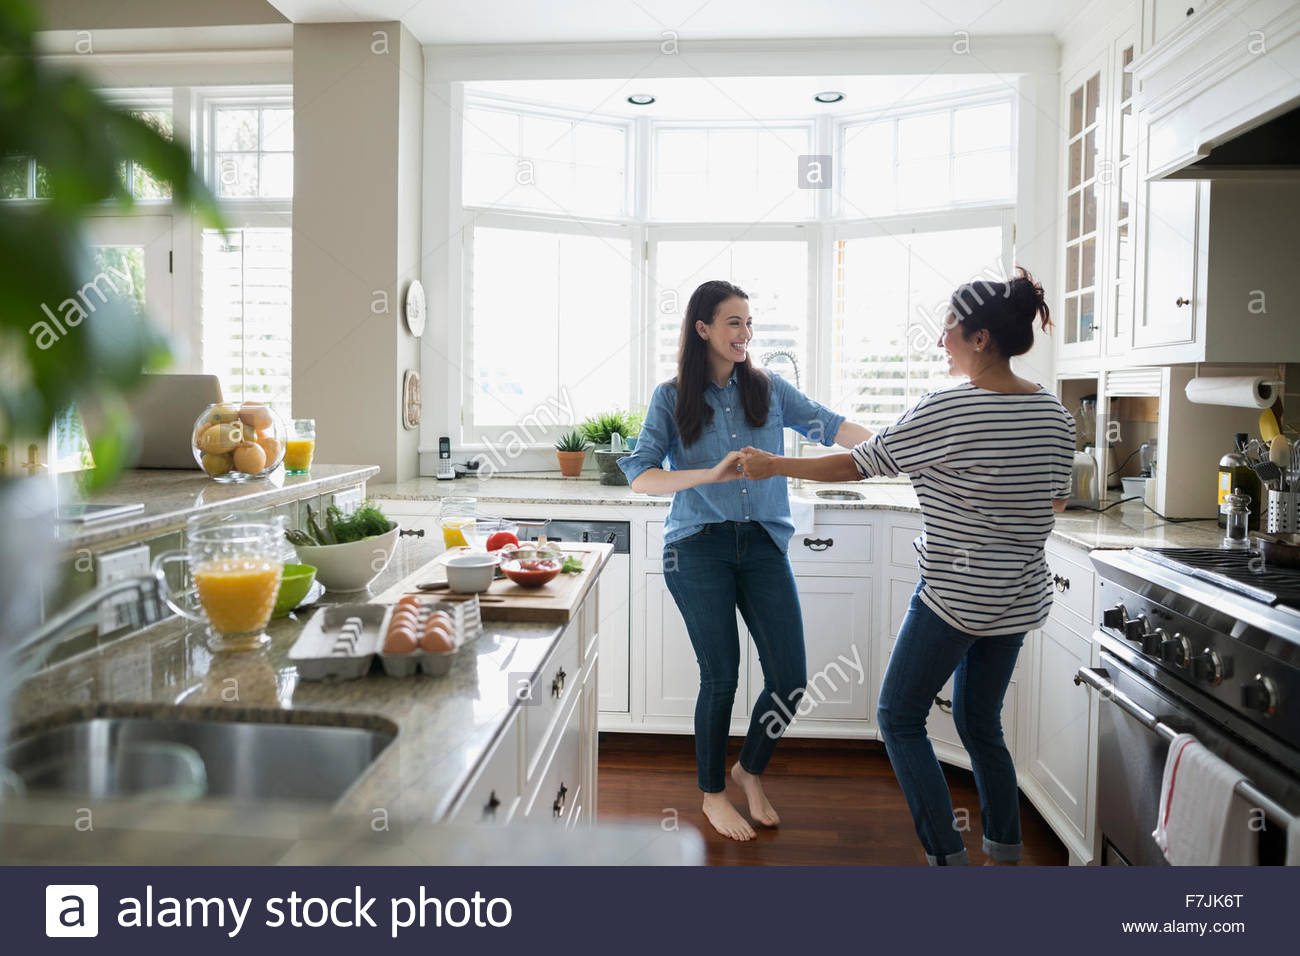 Mother and daughter dancing in kitchen - Stock Image